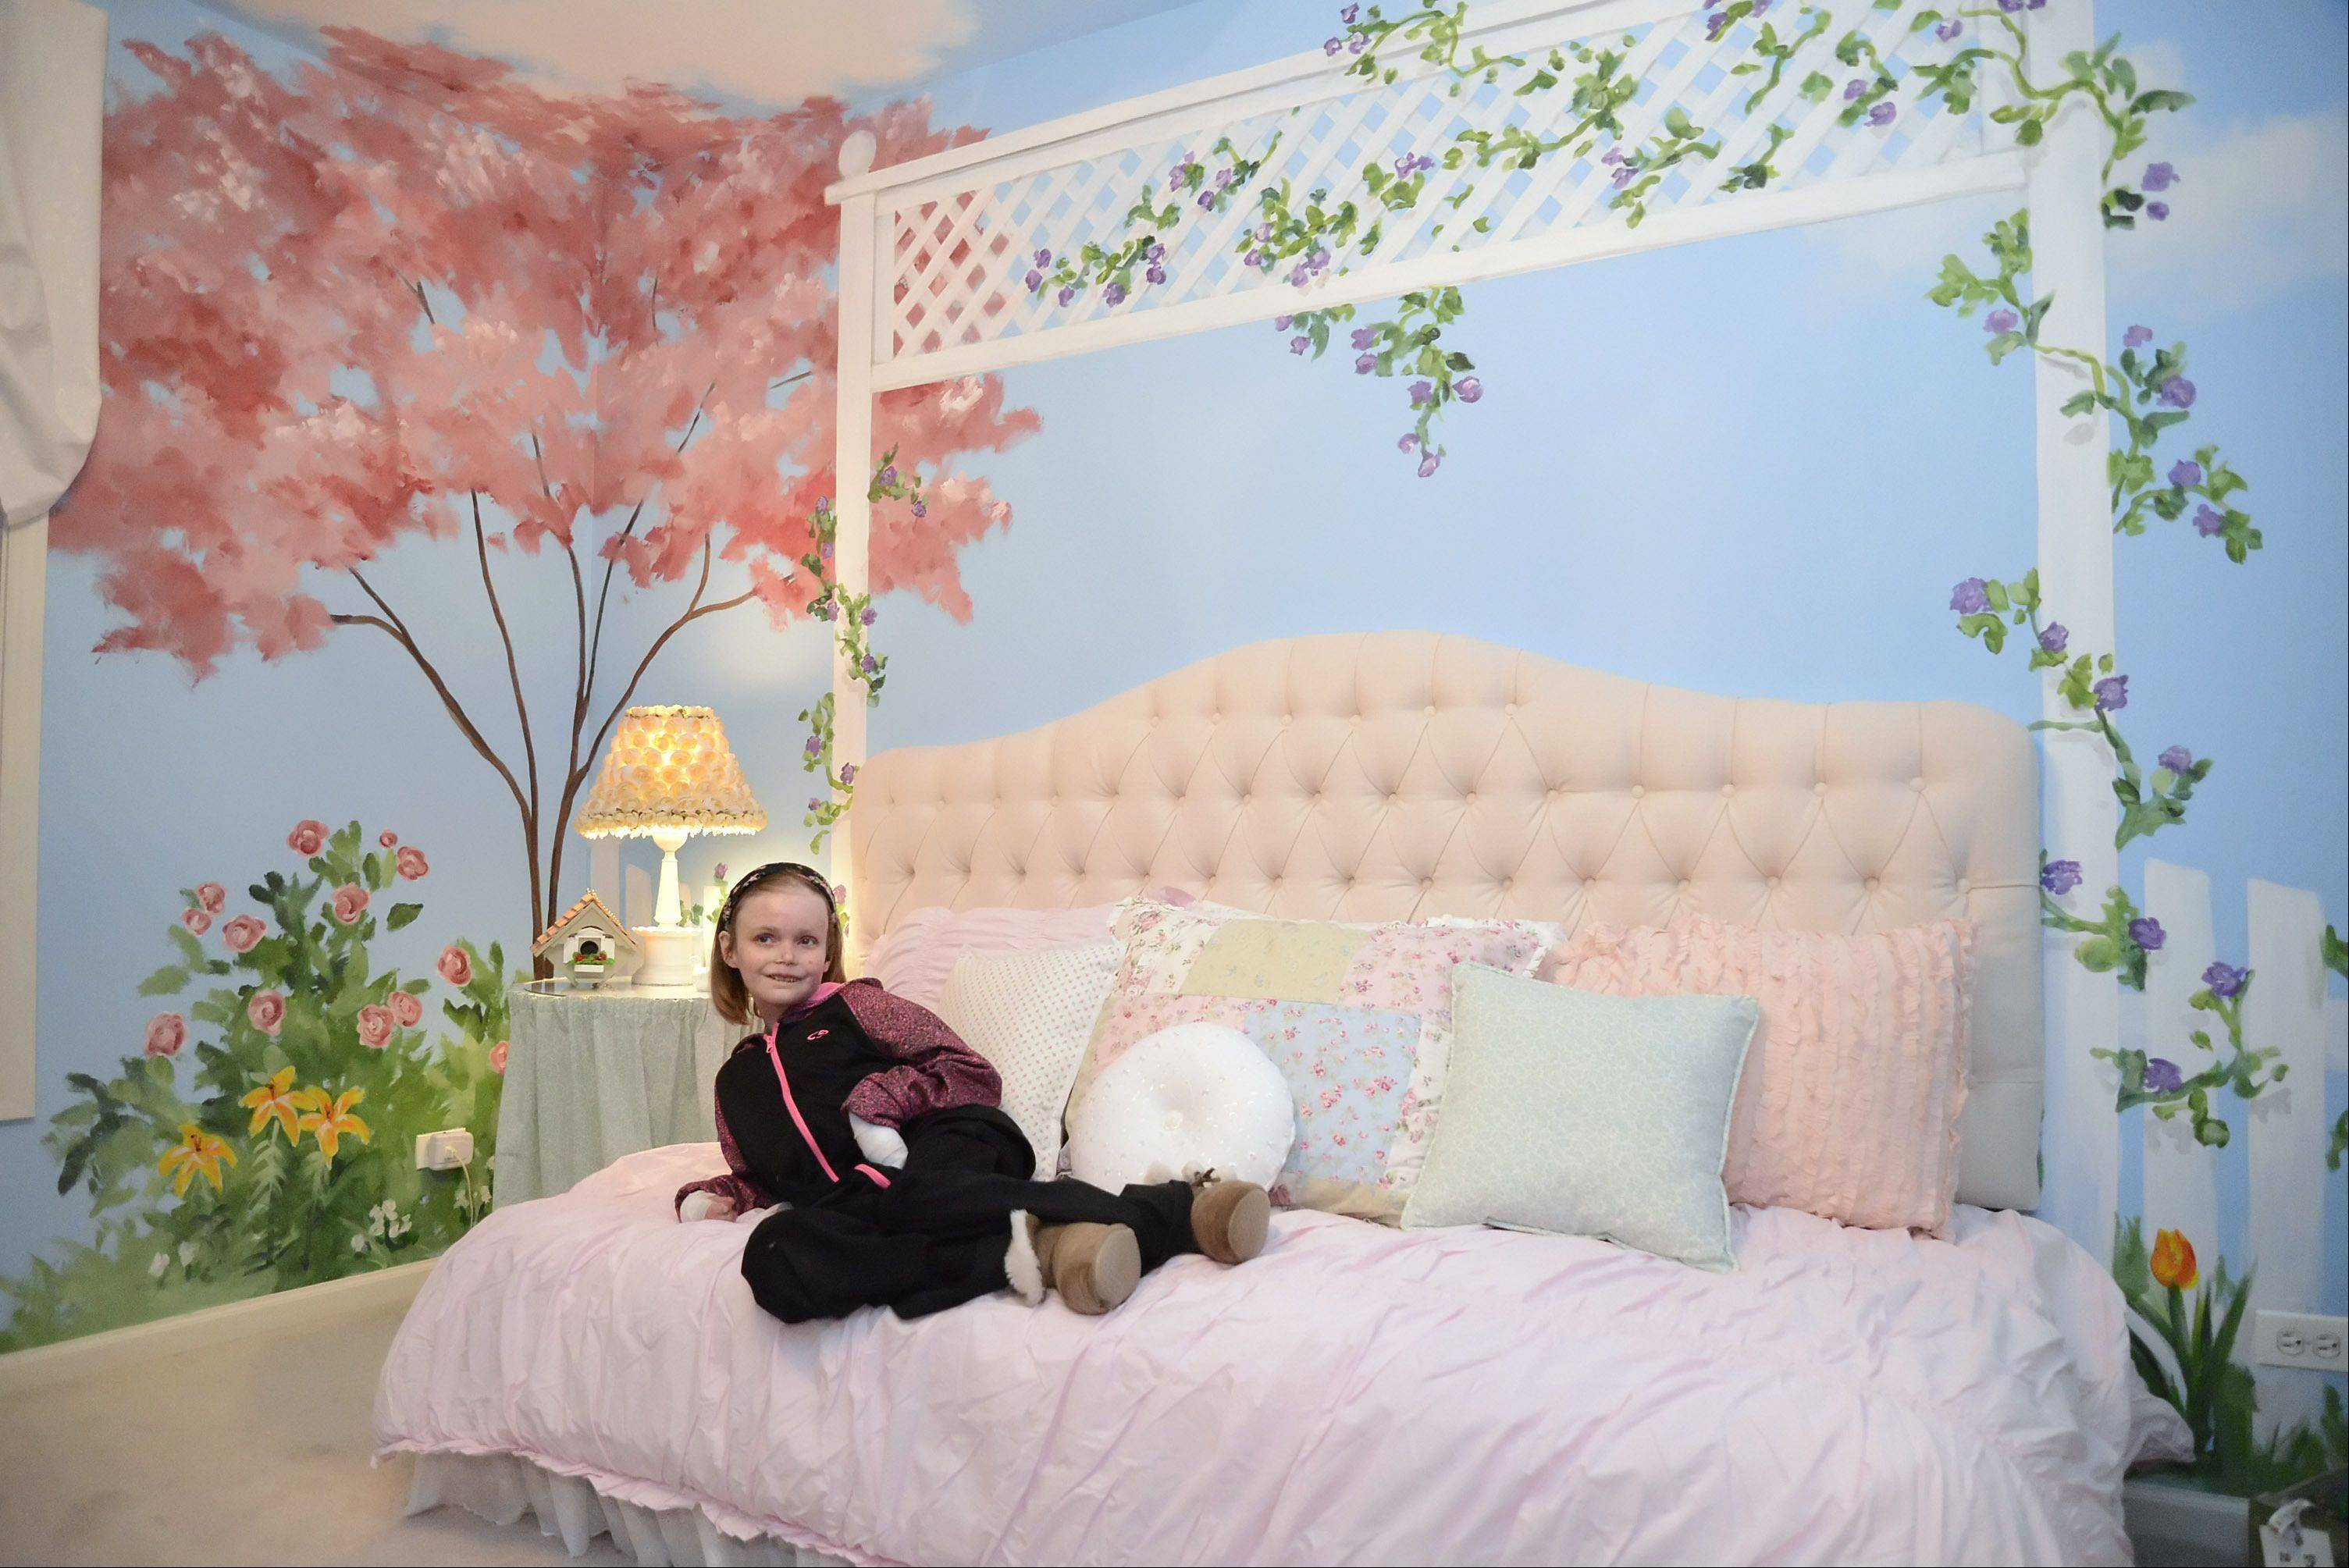 Catharine Steiner, 16, of St. Charles, settles onto her bed in her made-over bedroom for the first time on Thursday. Special Spaces Chicagoland, a non-profit organization, creates dream bedrooms for children with life-threatening medical conditions. Catharine was born with Recessive Dystrophic Epidermolysis Bullosa, a rare genetic connective tissue disorder. She requested a garden theme with blues, pinks, greens and purples.